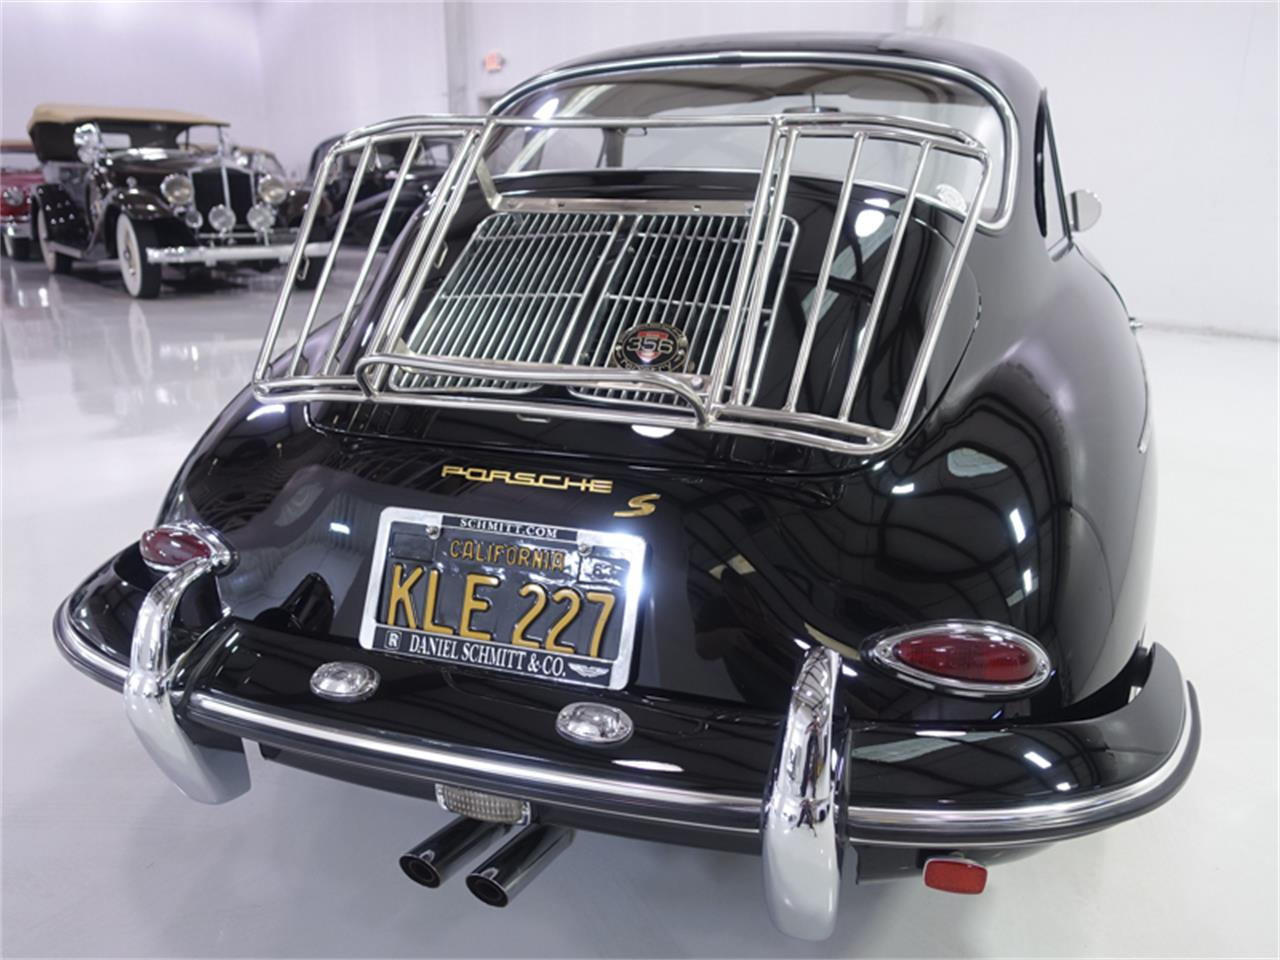 Large Picture of 1963 Porsche 356B located in Missouri - $109,900.00 Offered by Daniel Schmitt & Co. - PGEA